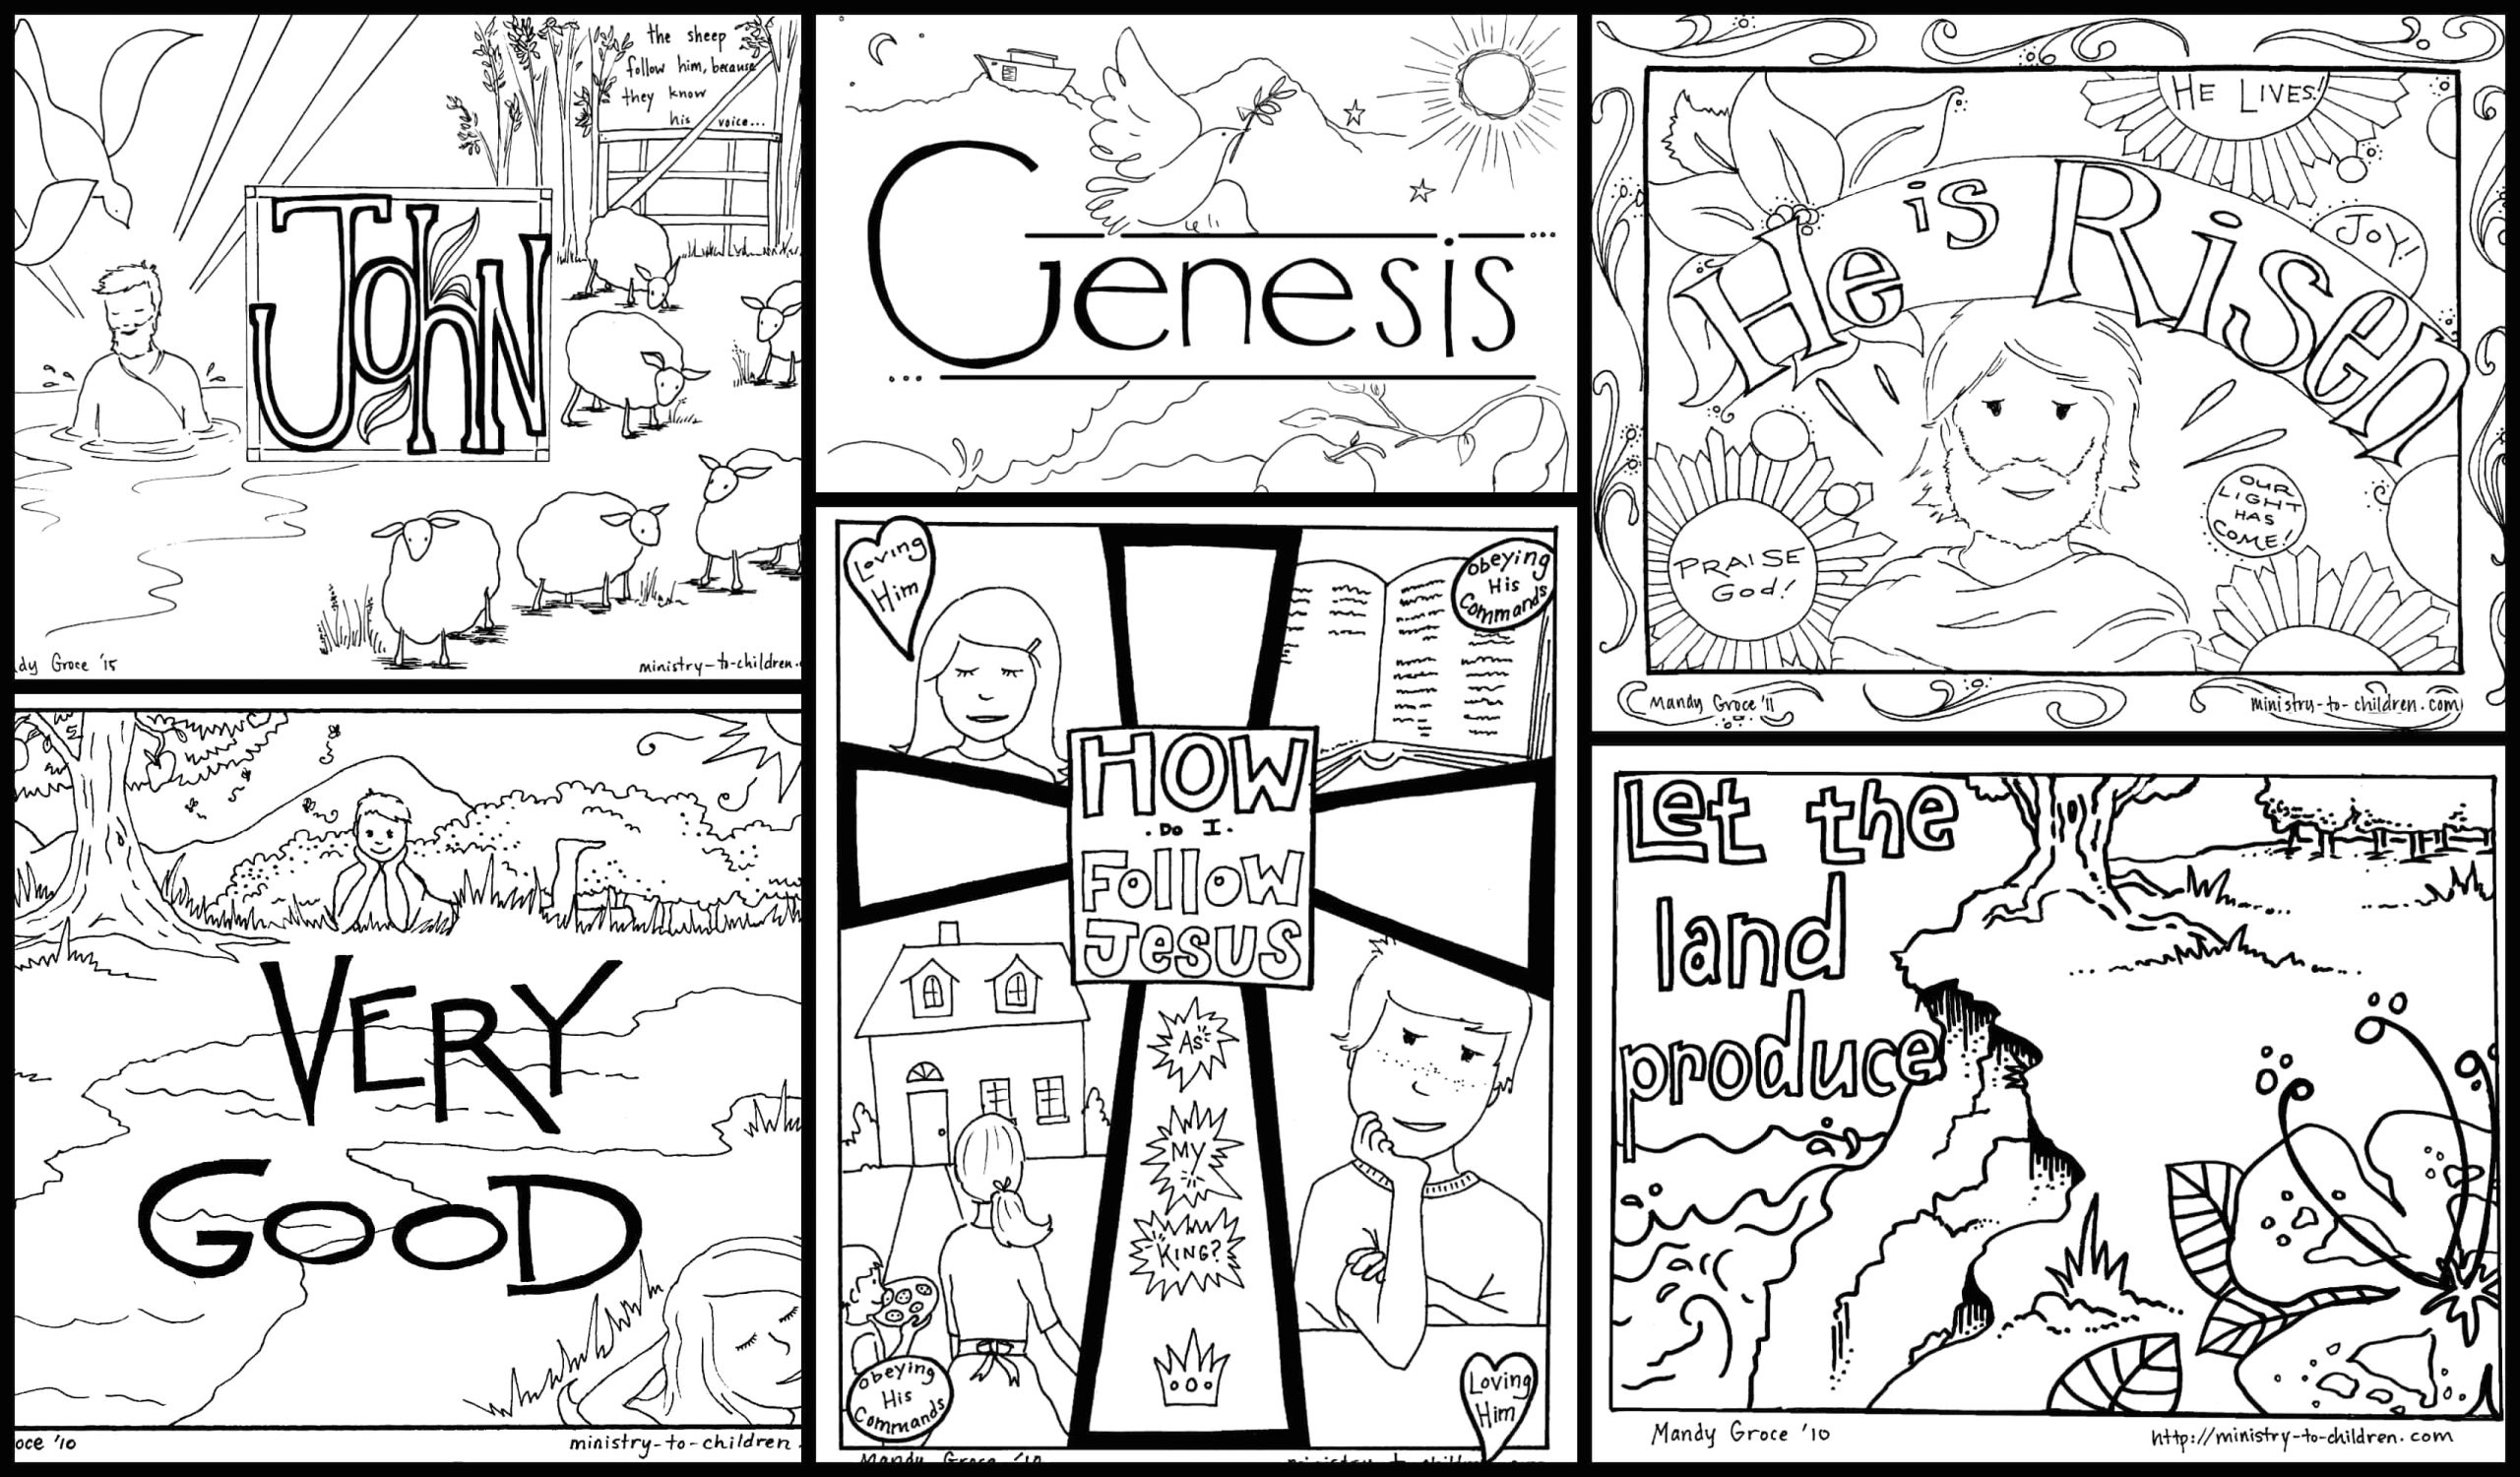 66 Books Of the Bible Coloring Pages Pdf 66 Books Of the Bible Coloring Pages Hijabaqila